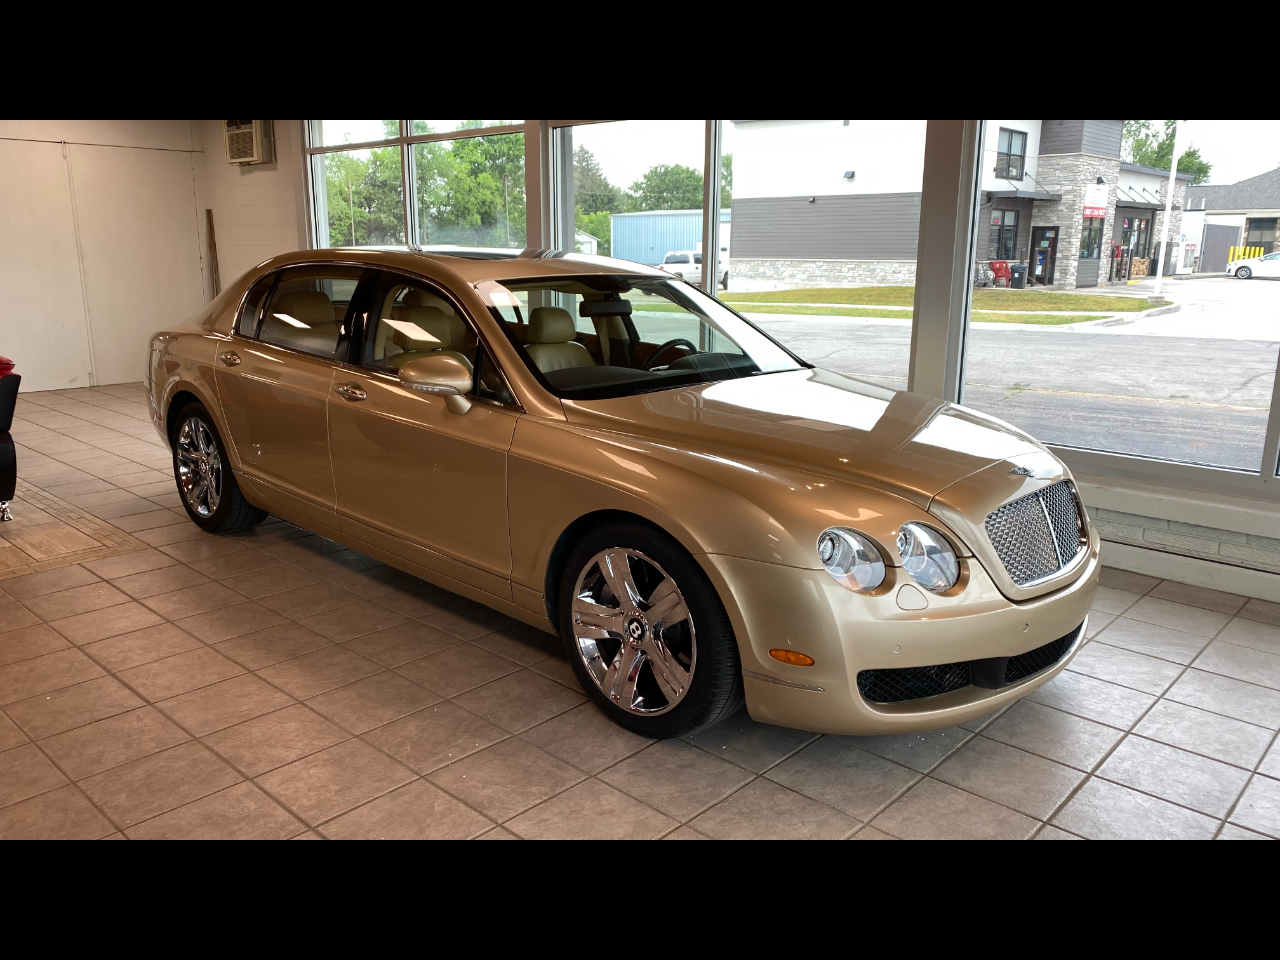 Bentley Continental Flying Spur 4dr Sdn 2007